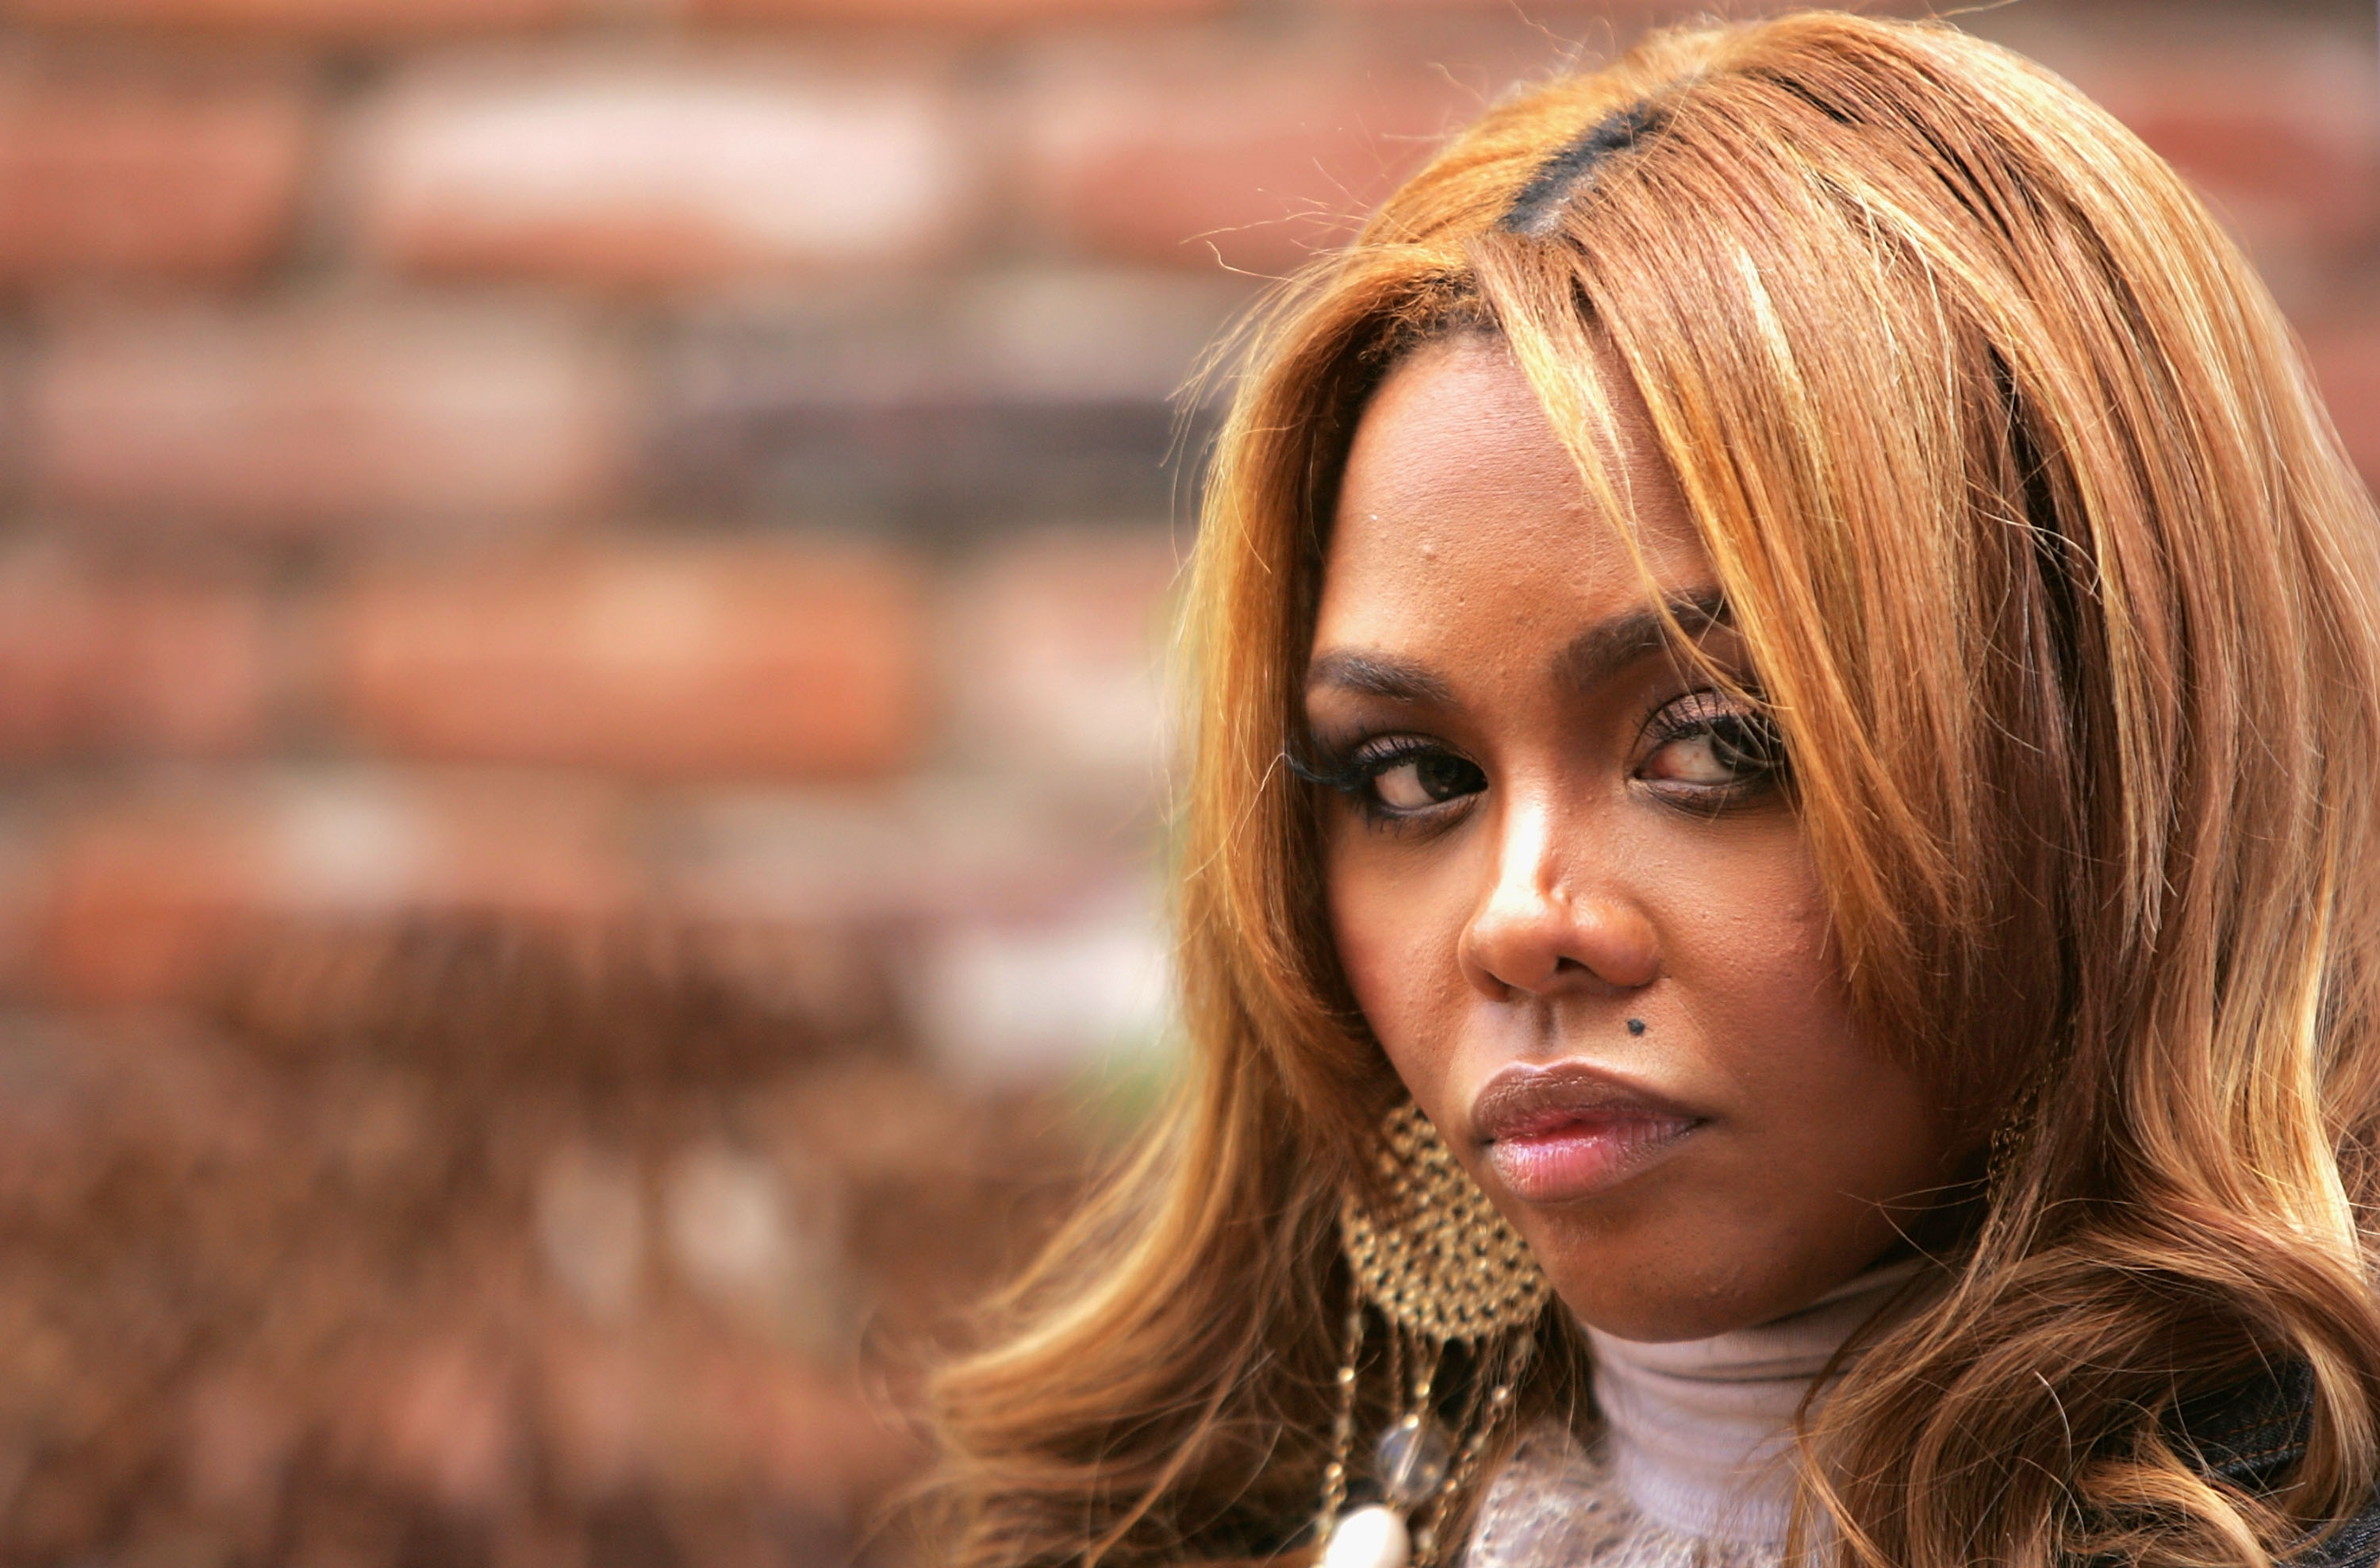 Lil' Kim, facing big debt, files for bankruptcy - NY Daily New lil kim photos